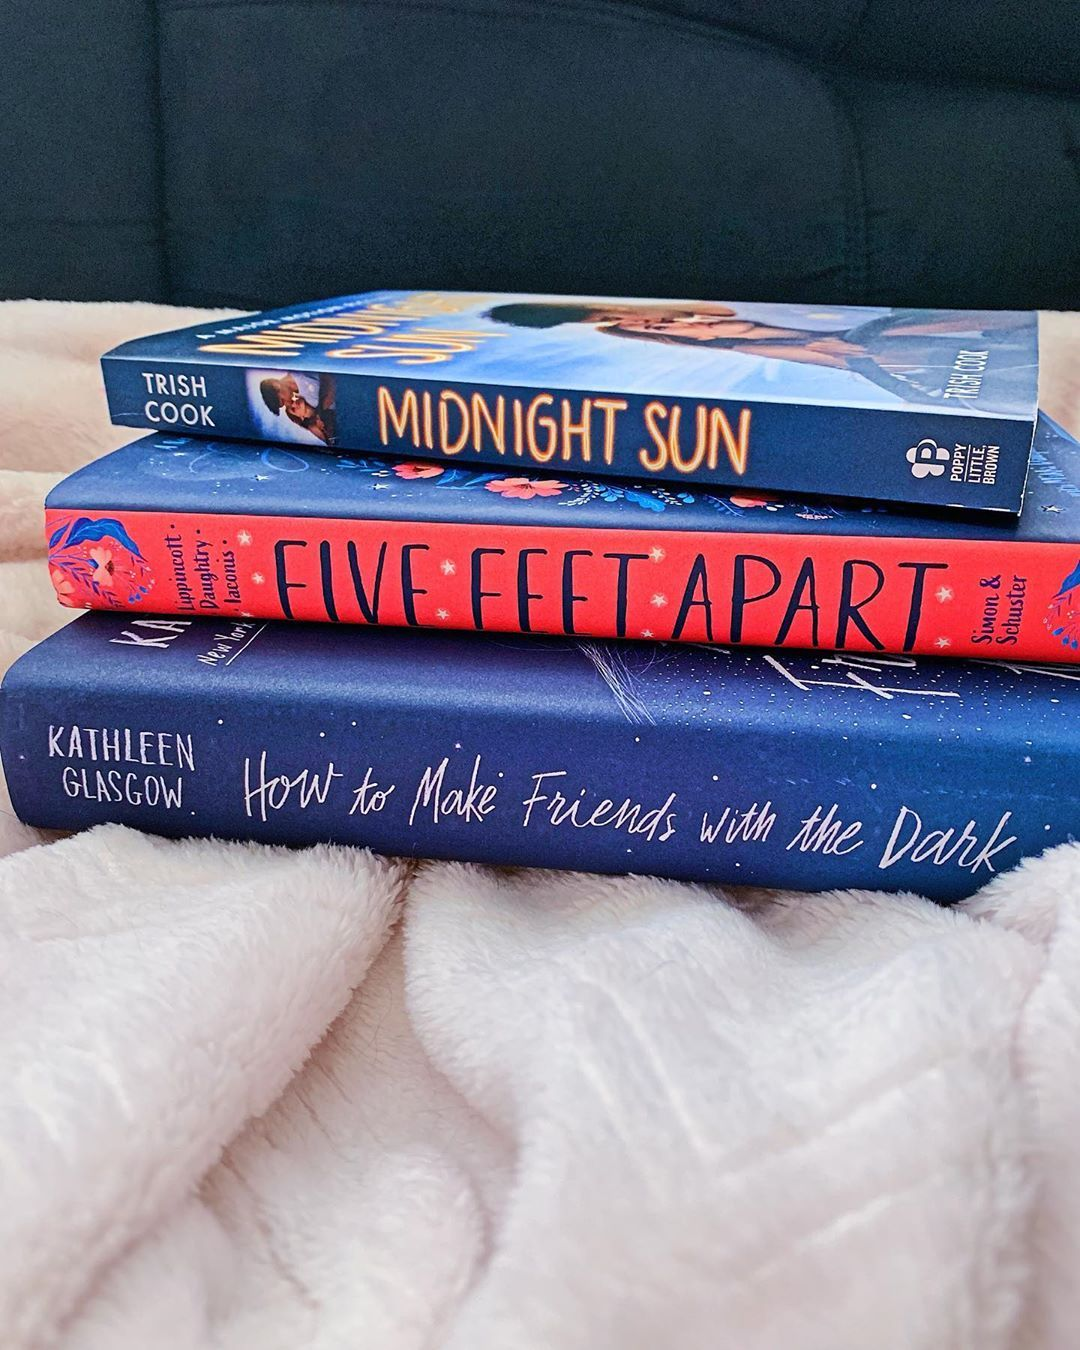 I don't live near a book store anymore but good thing @target has good sales on books ☺️ . . .  target  targetfinds  targetdeals  targethaul  books  bookhaul  midnightsun  trishcook  fivefeetapart  howtomakefriendswiththedark  kathleenglasgow